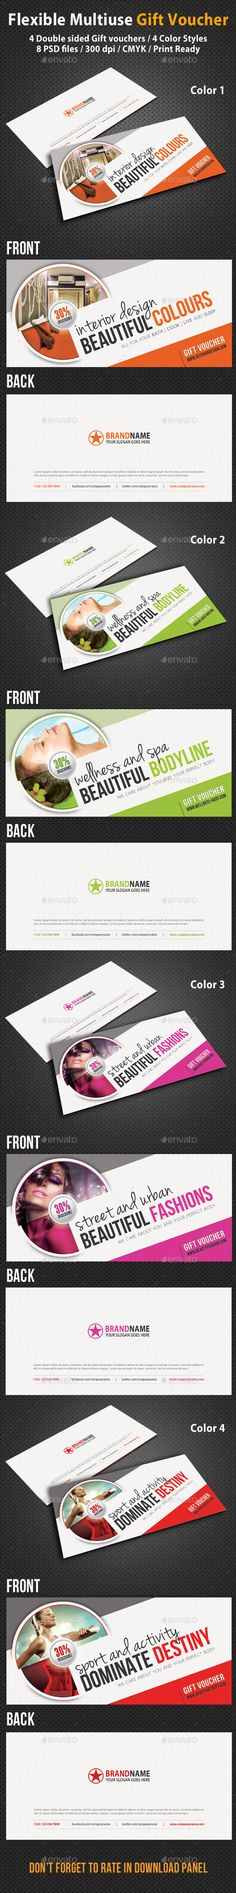 Gift Voucher Template, Font logo and Business cards - gift voucher examples